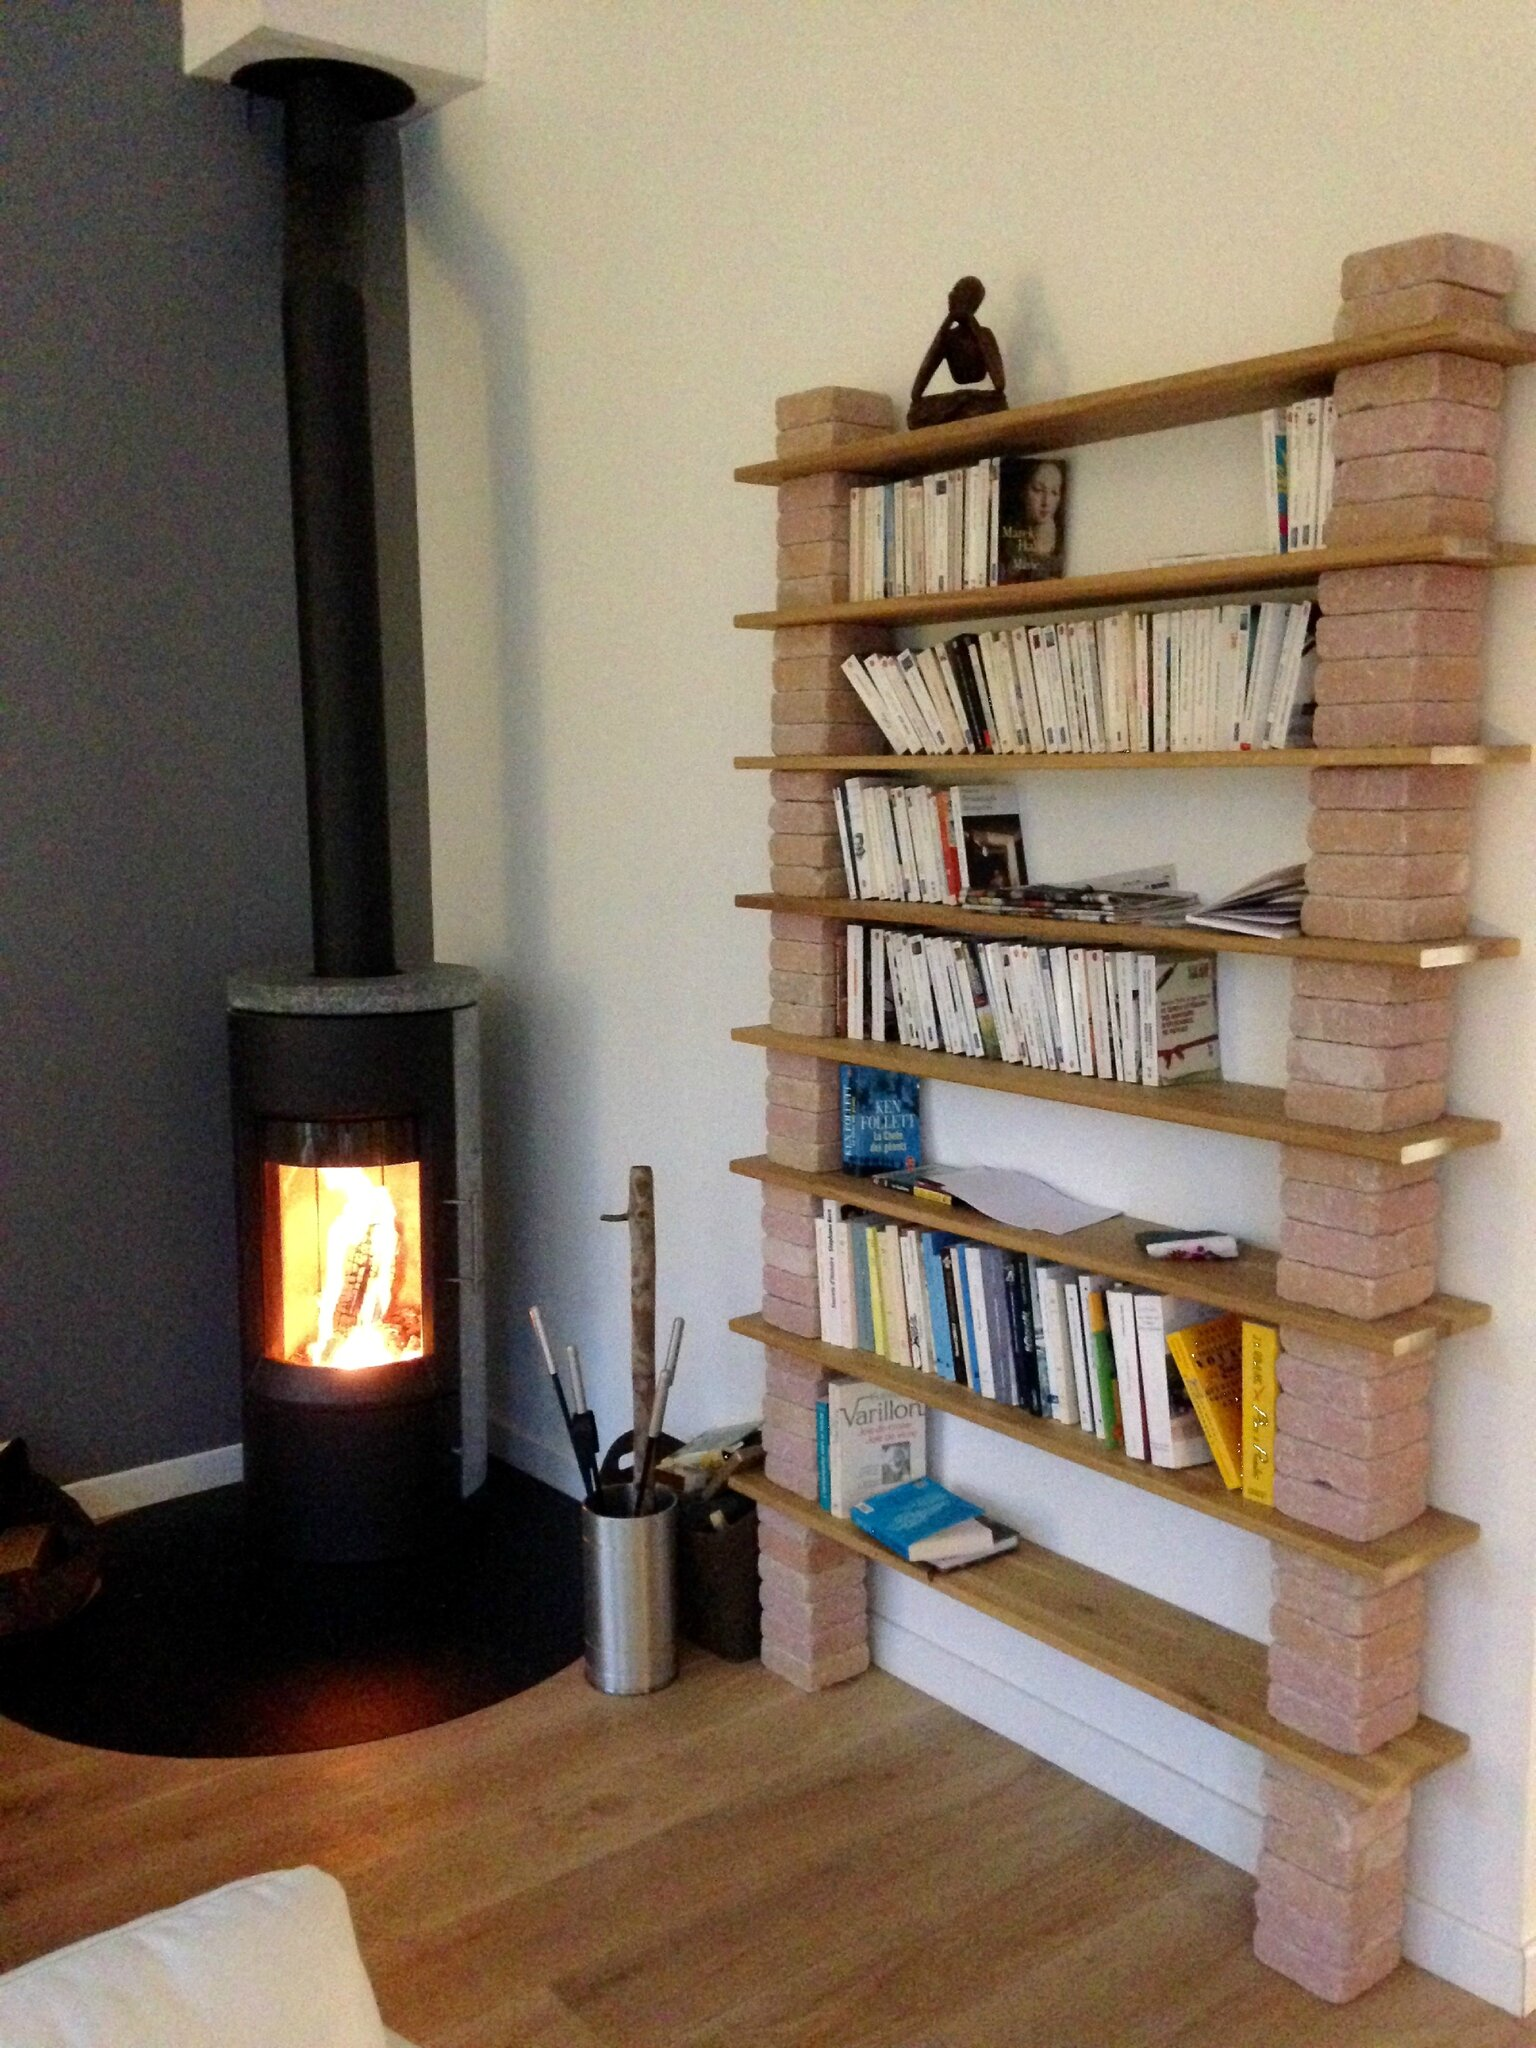 Une biblioth que sur mesure r aliser soi m me home and office design - Etagere en bois a faire soi meme ...